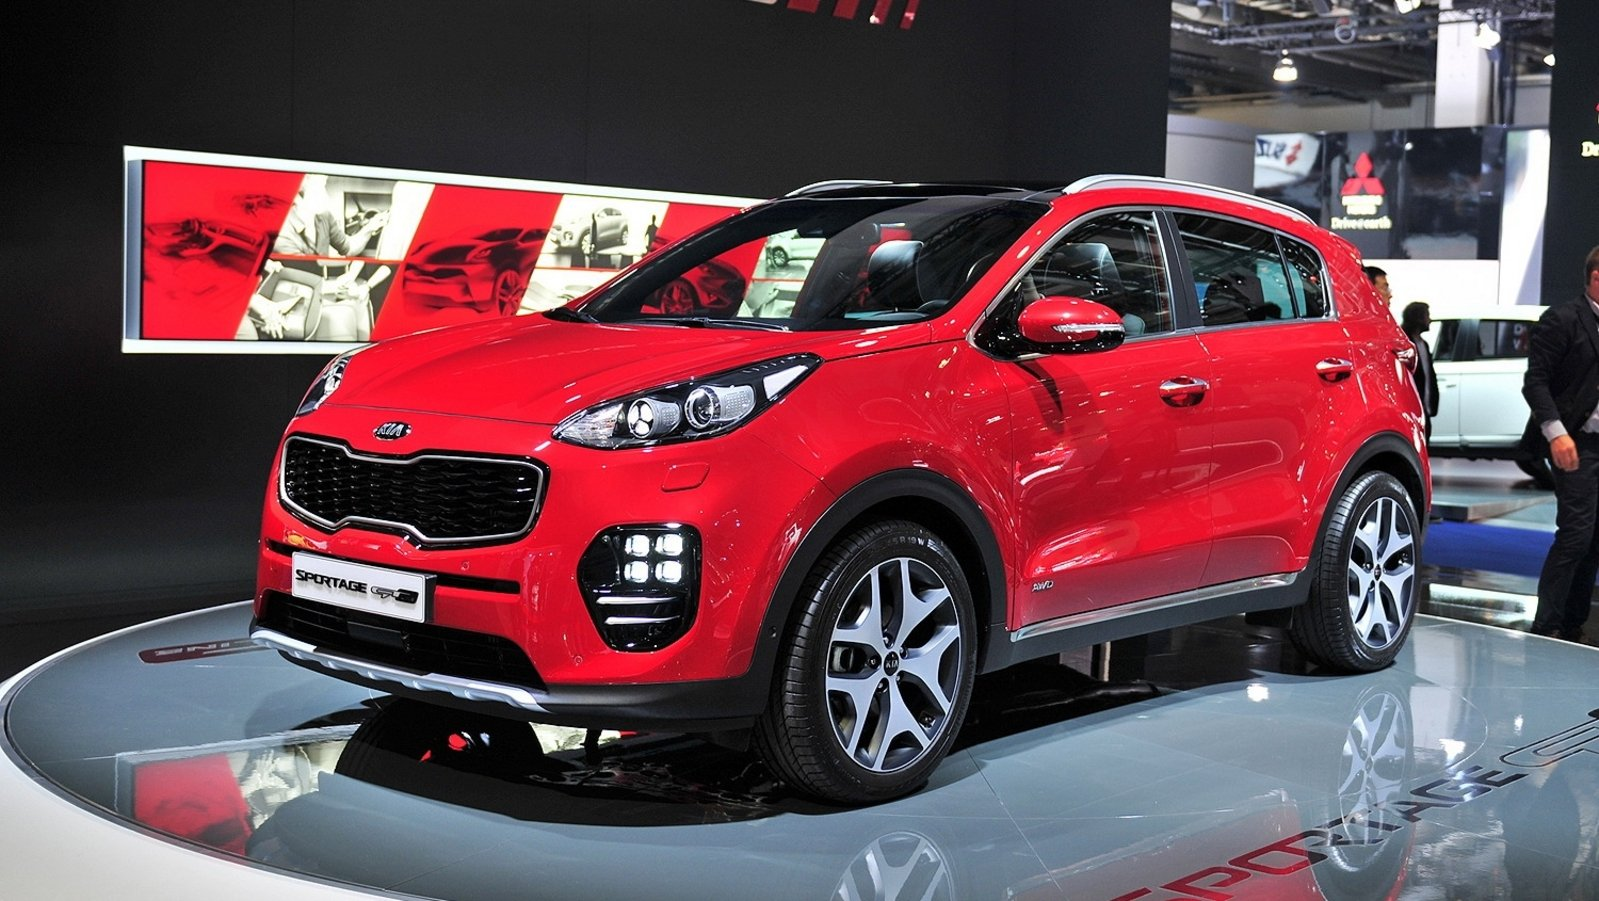 2017 Kia Sportage Review - Top Speed